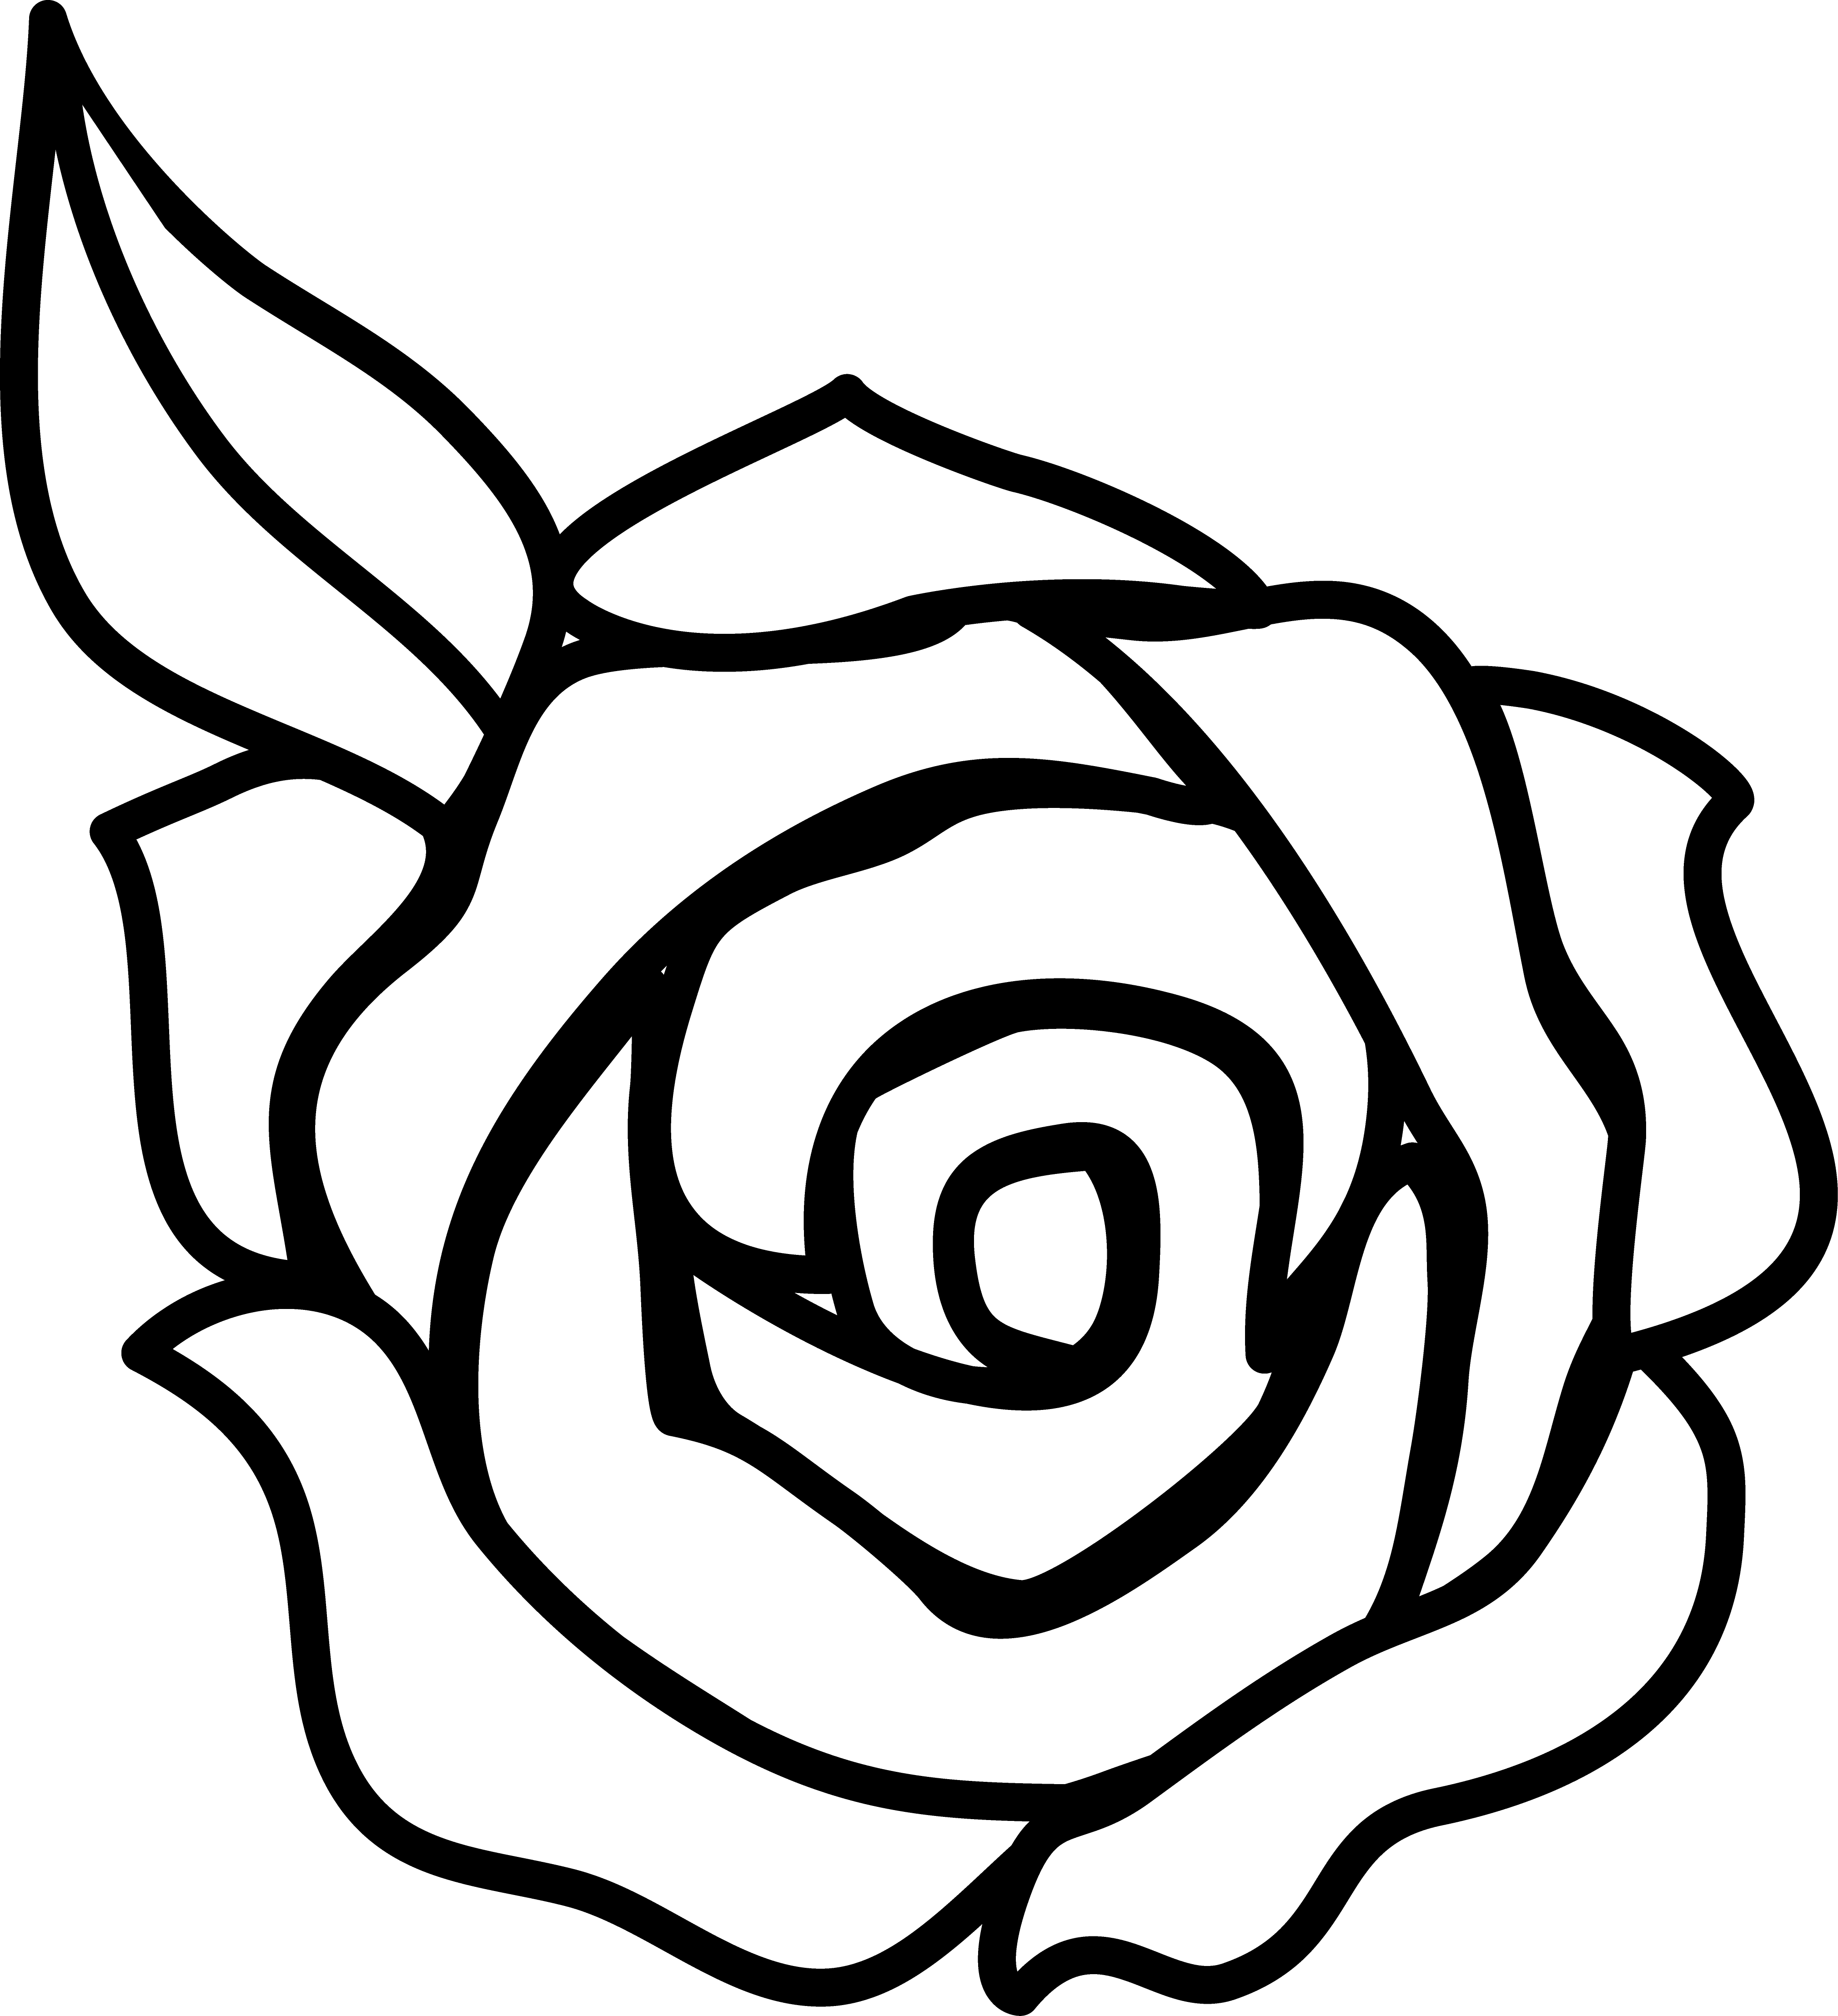 Flower Clip Art Free Black And White - Cliparts.co